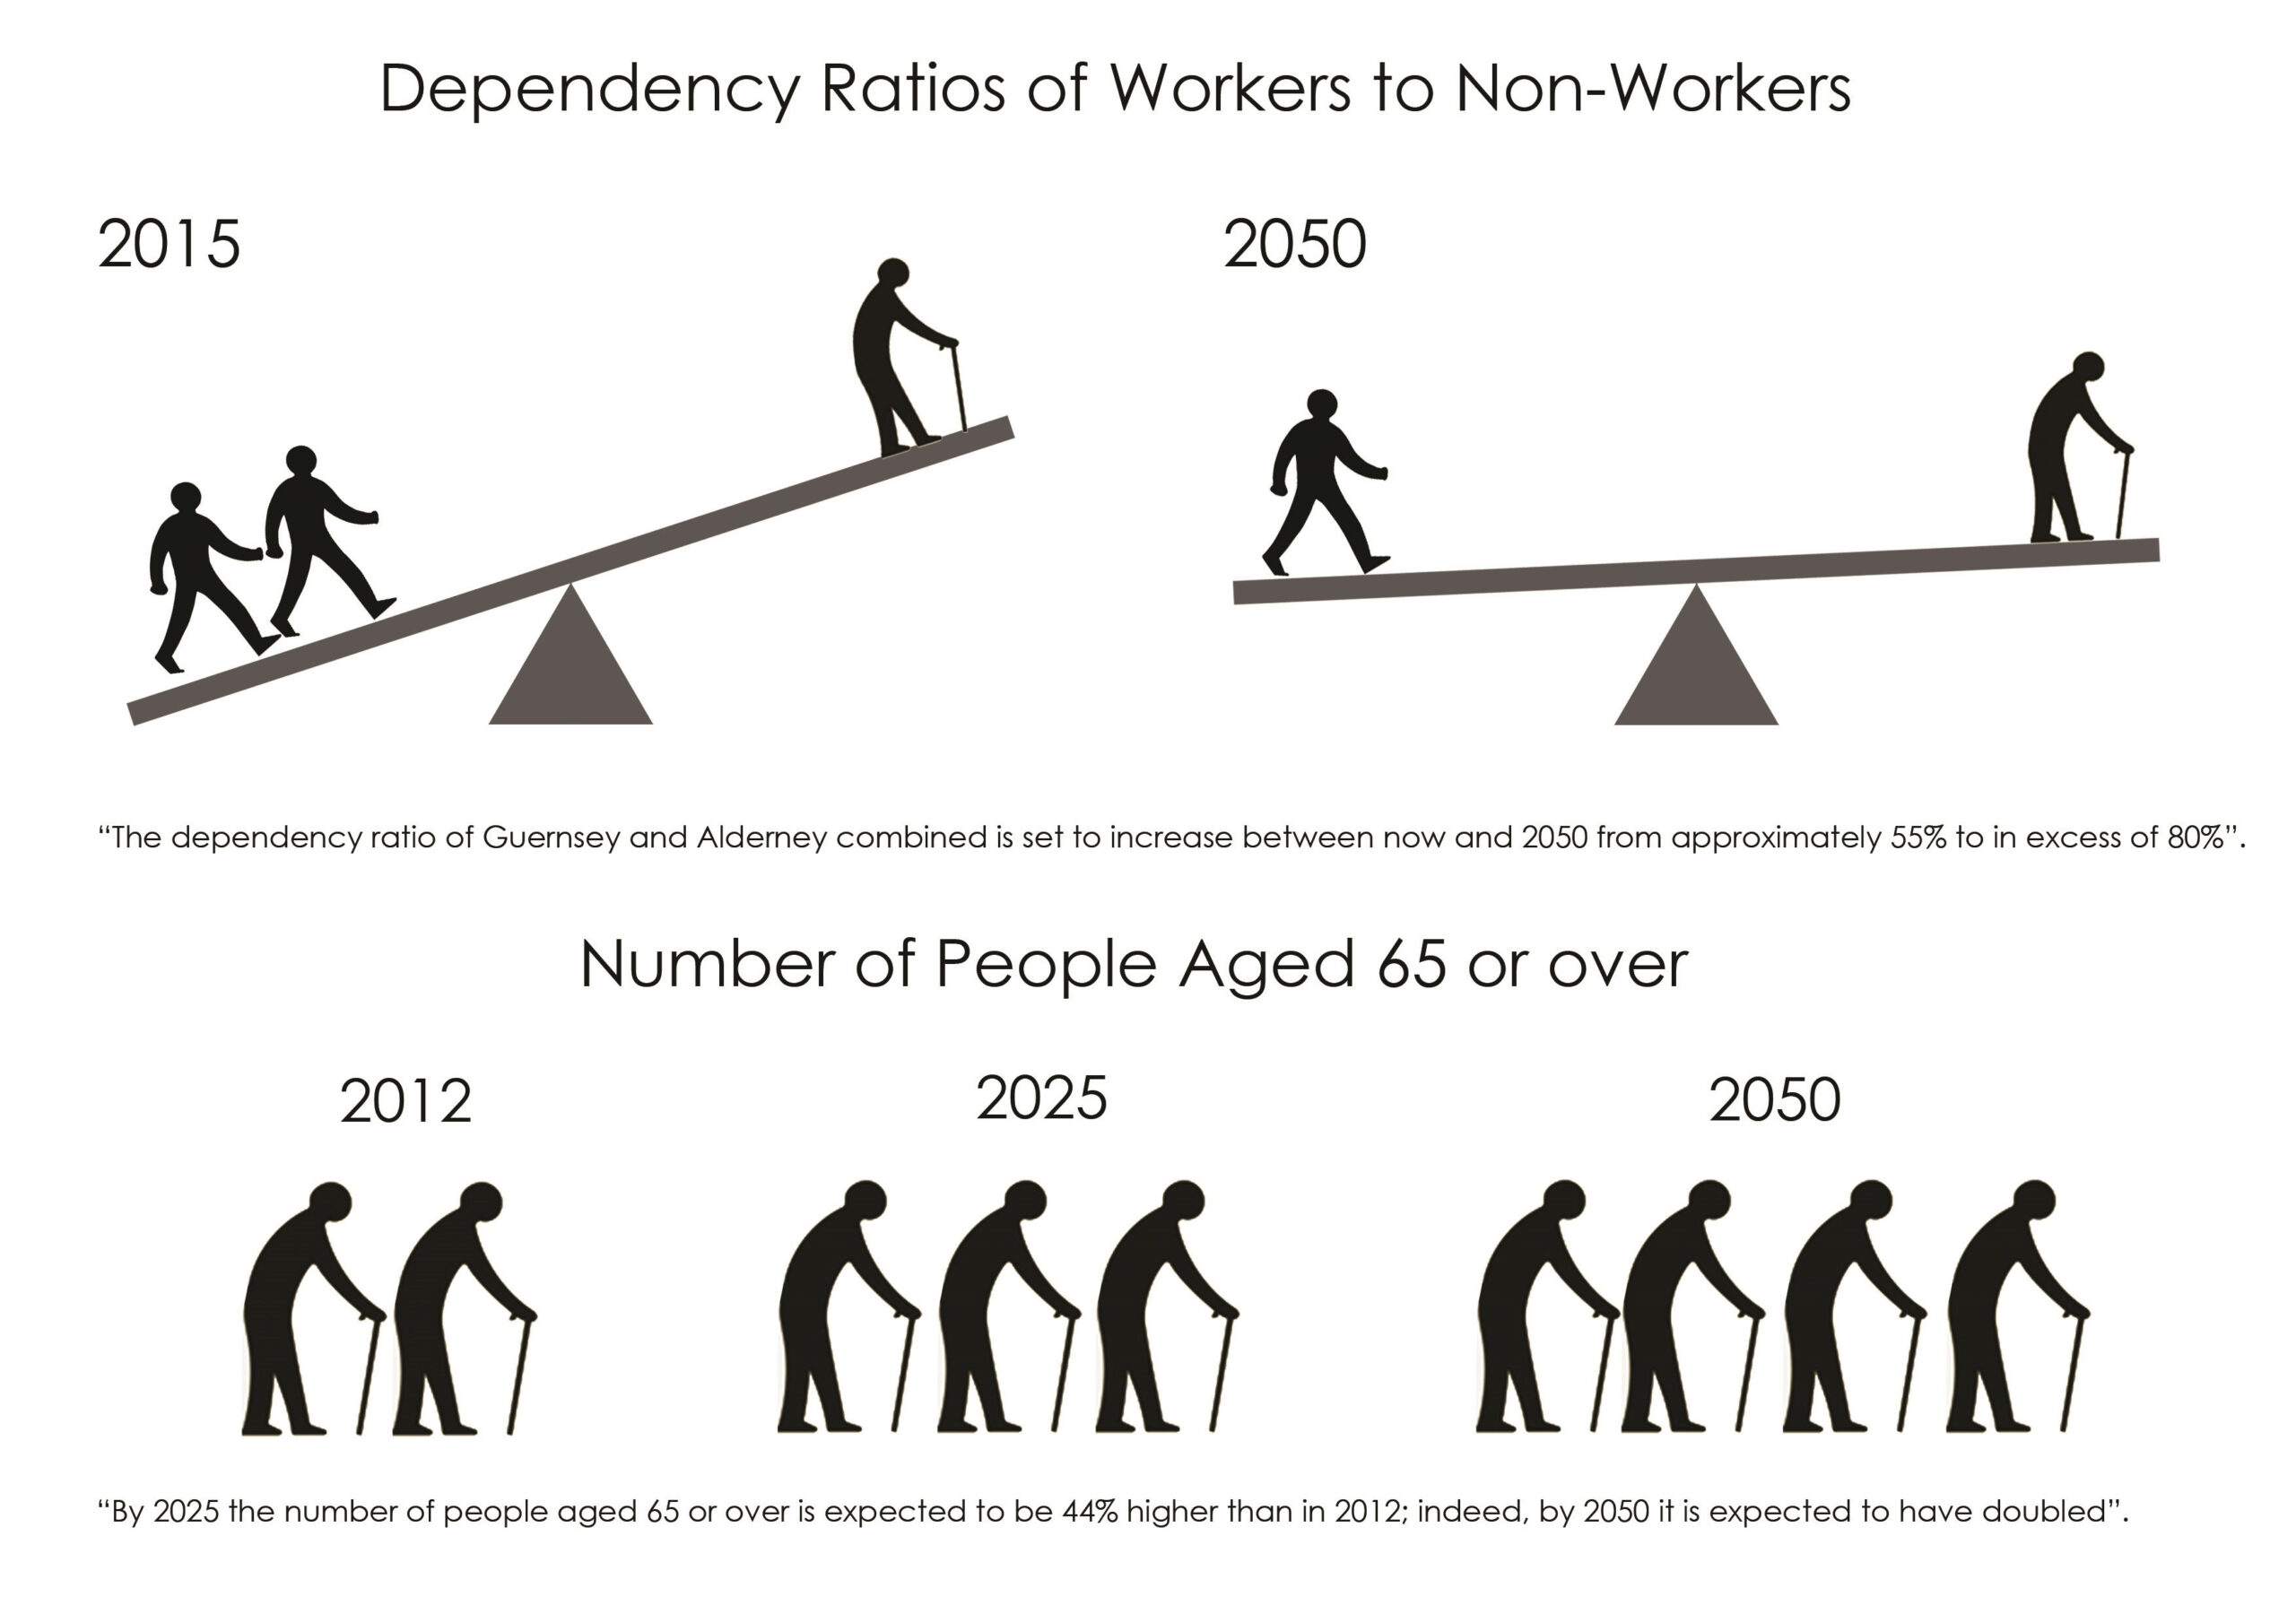 Dependency Ratios of Workers to Non-Workers. The dependency ratio of Guernsey and Alderney combined is set to increase between now and 2050 from approximately 55% to in excess of 80%. By 2025 the number of people aged 65 or over is expected to be 44% higher than in 2012; indeed by 2050 it is expected to have doubled.